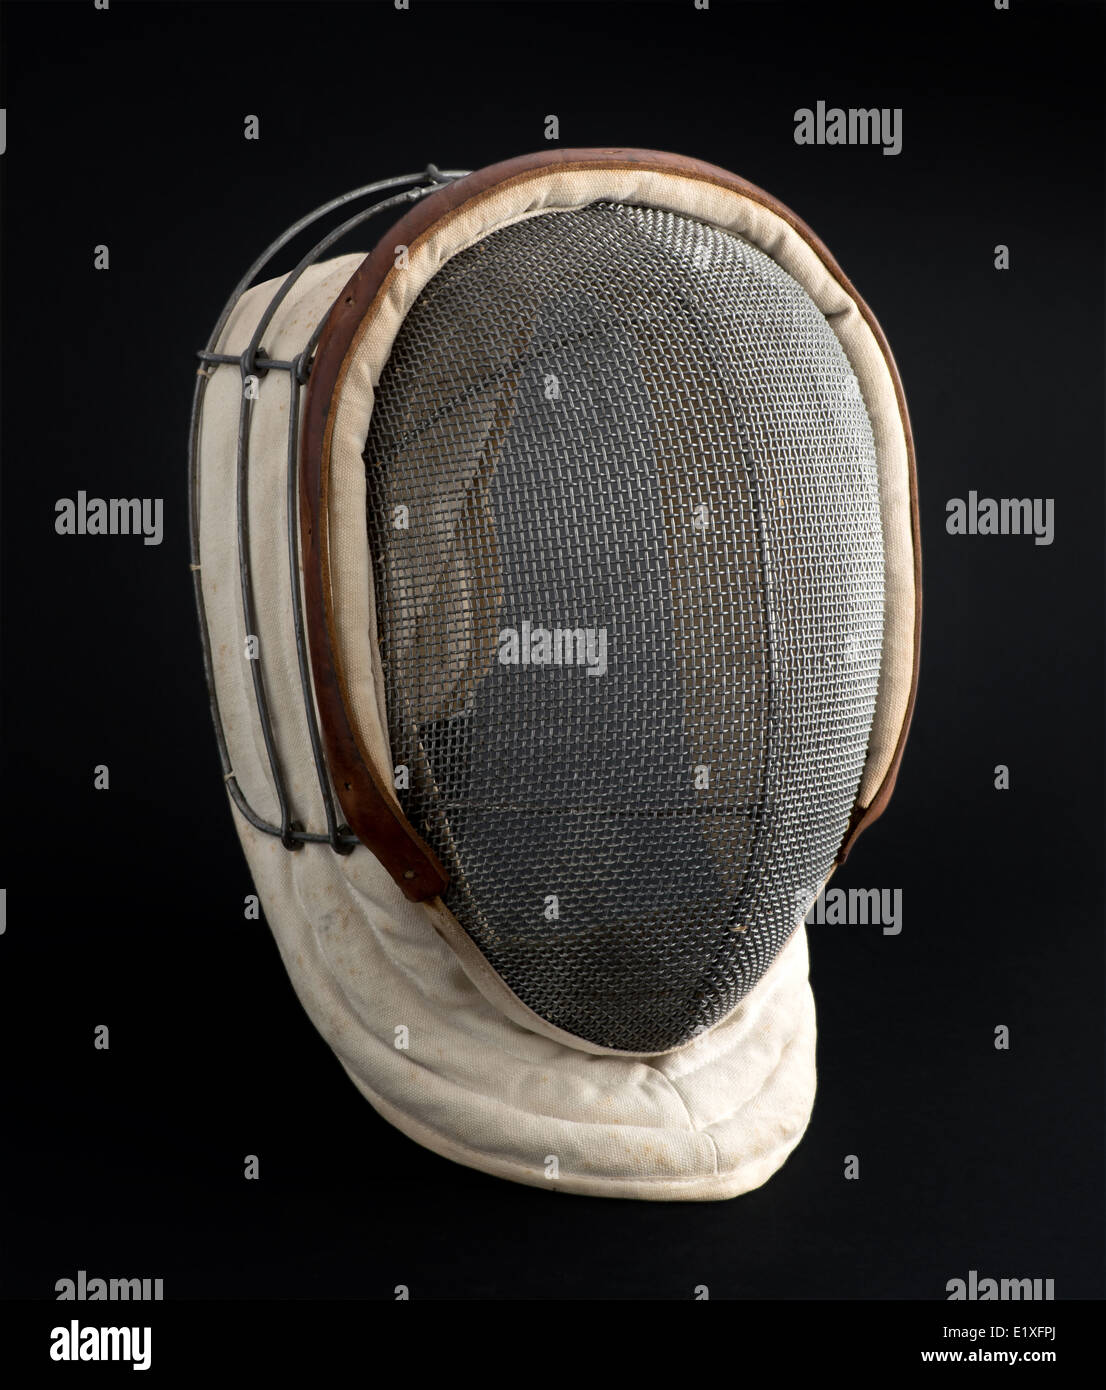 Fencing mask - Stock Image